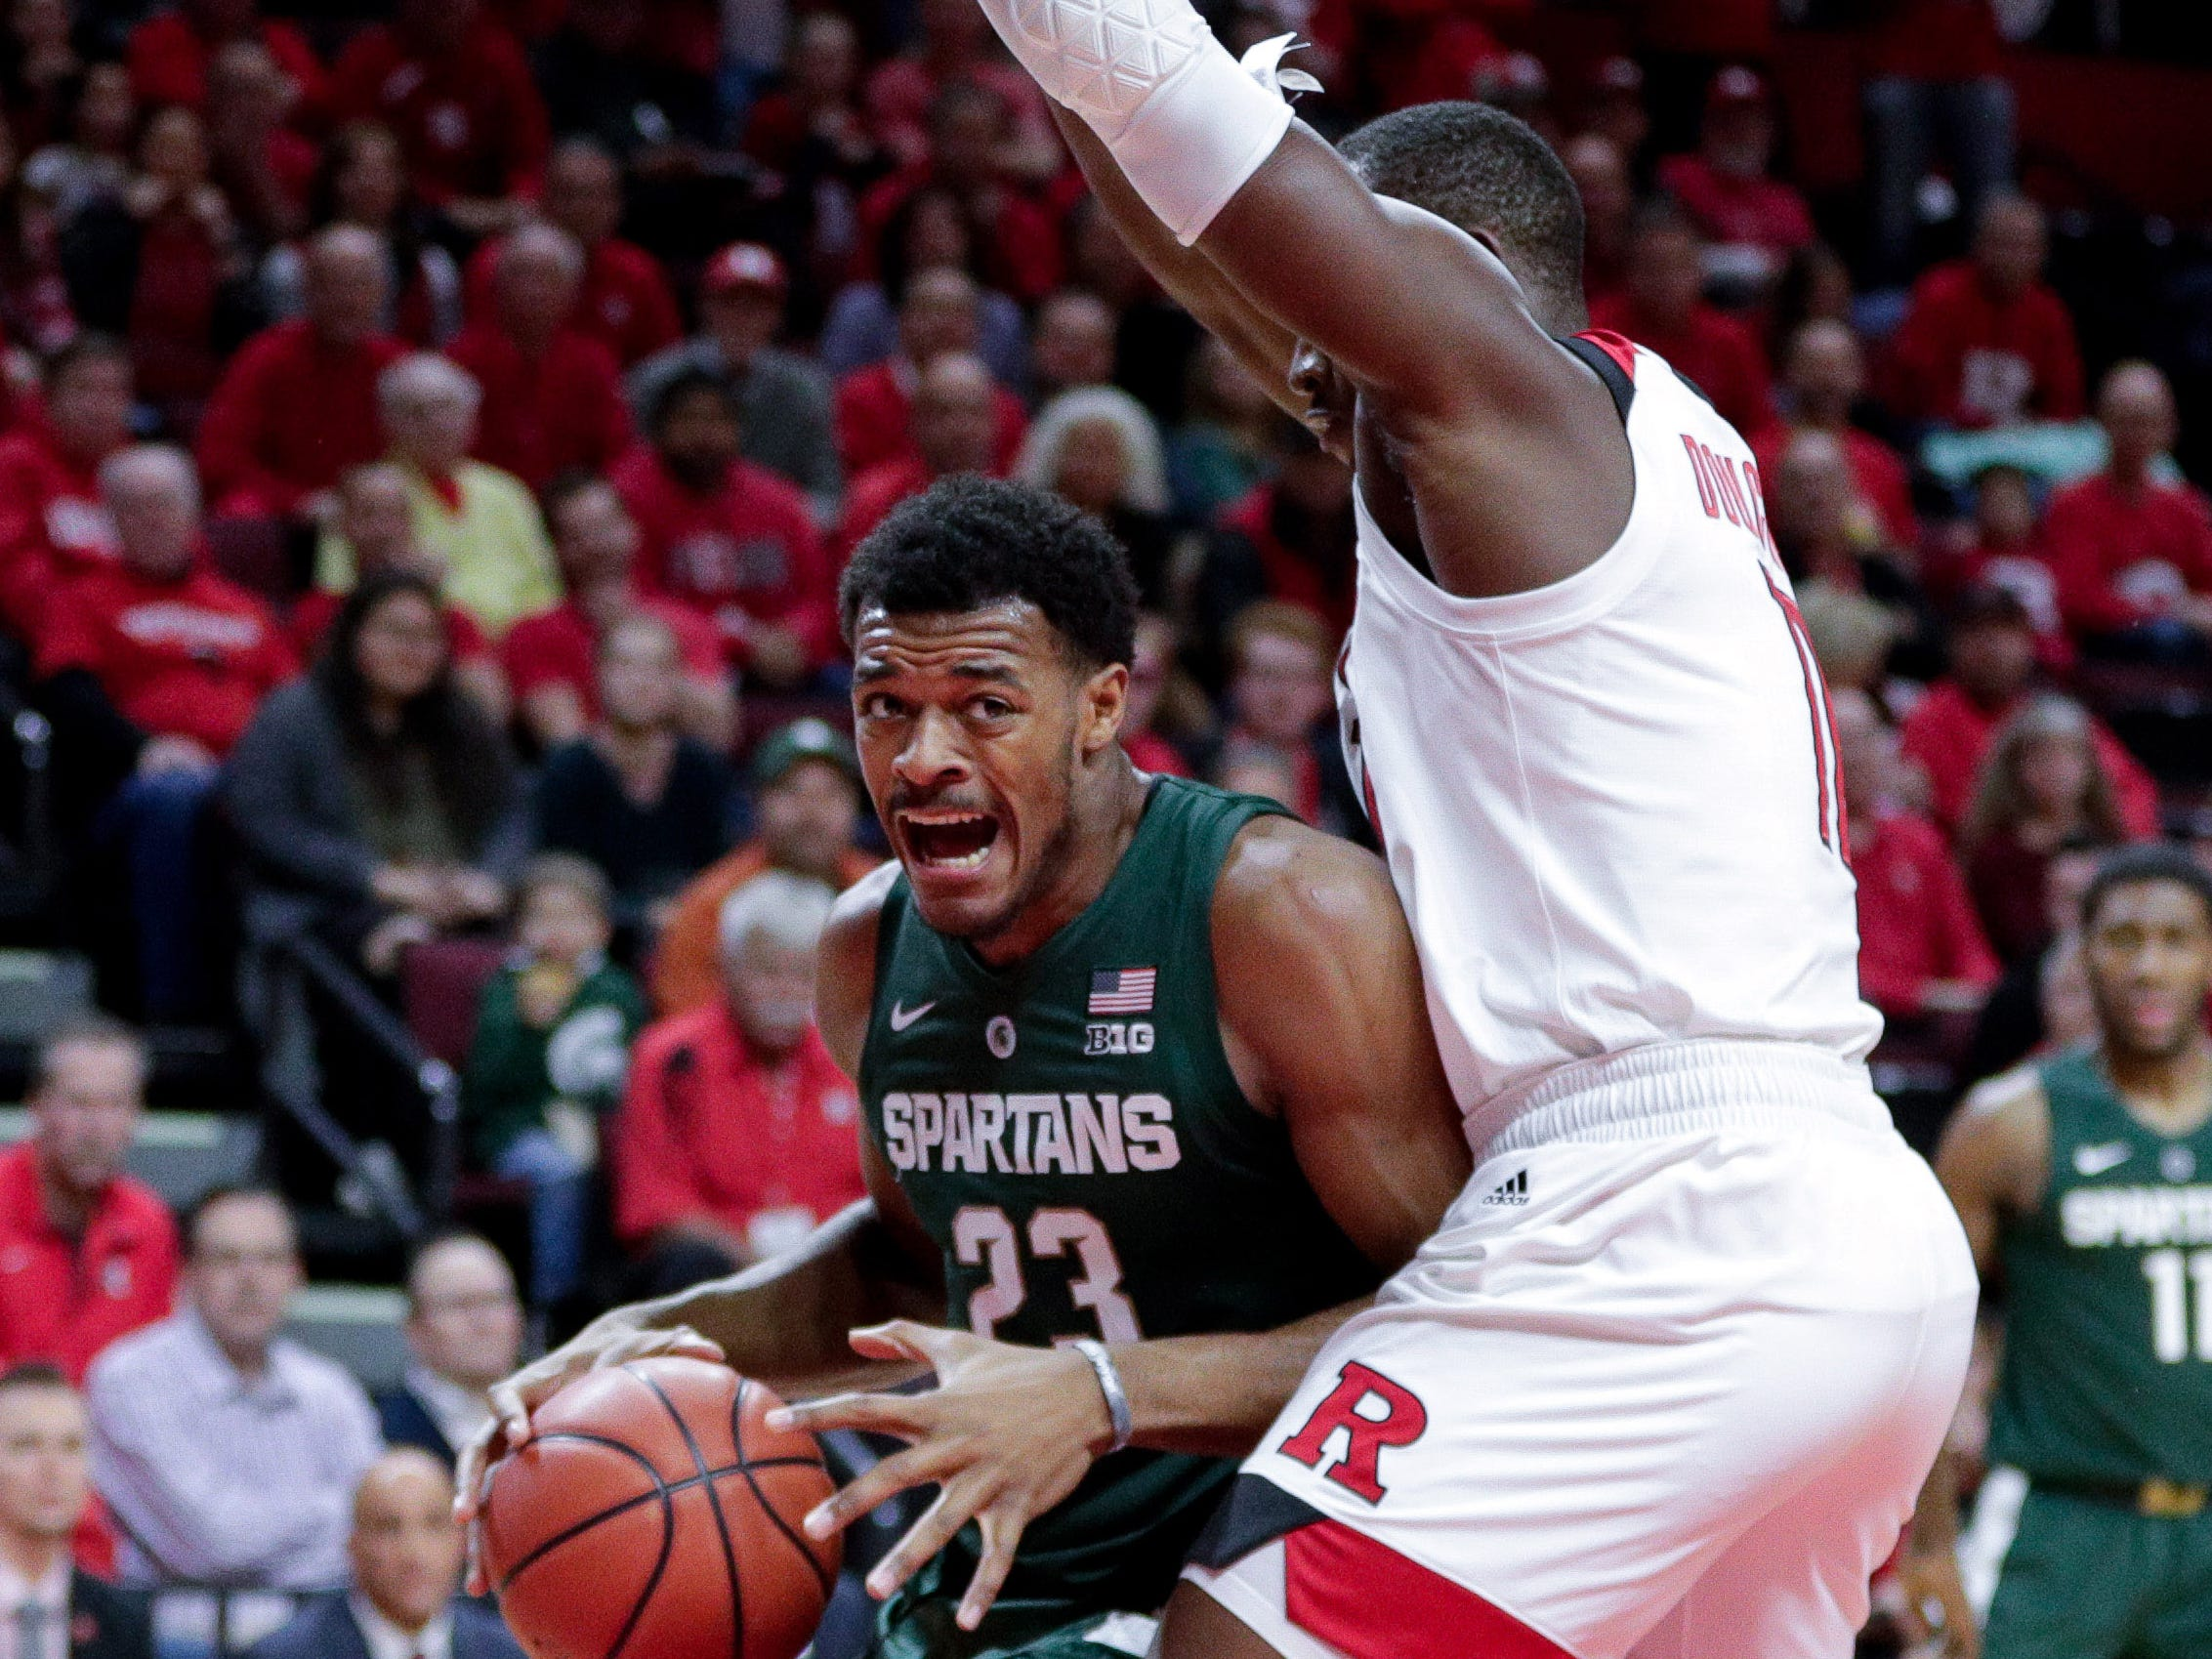 Michigan State Spartans forward Xavier Tillman (23) drives to the basket as Rutgers Scarlet Knights forward Mamadou Doucoure (11) defends during the first half at Rutgers Athletic Center (RAC).